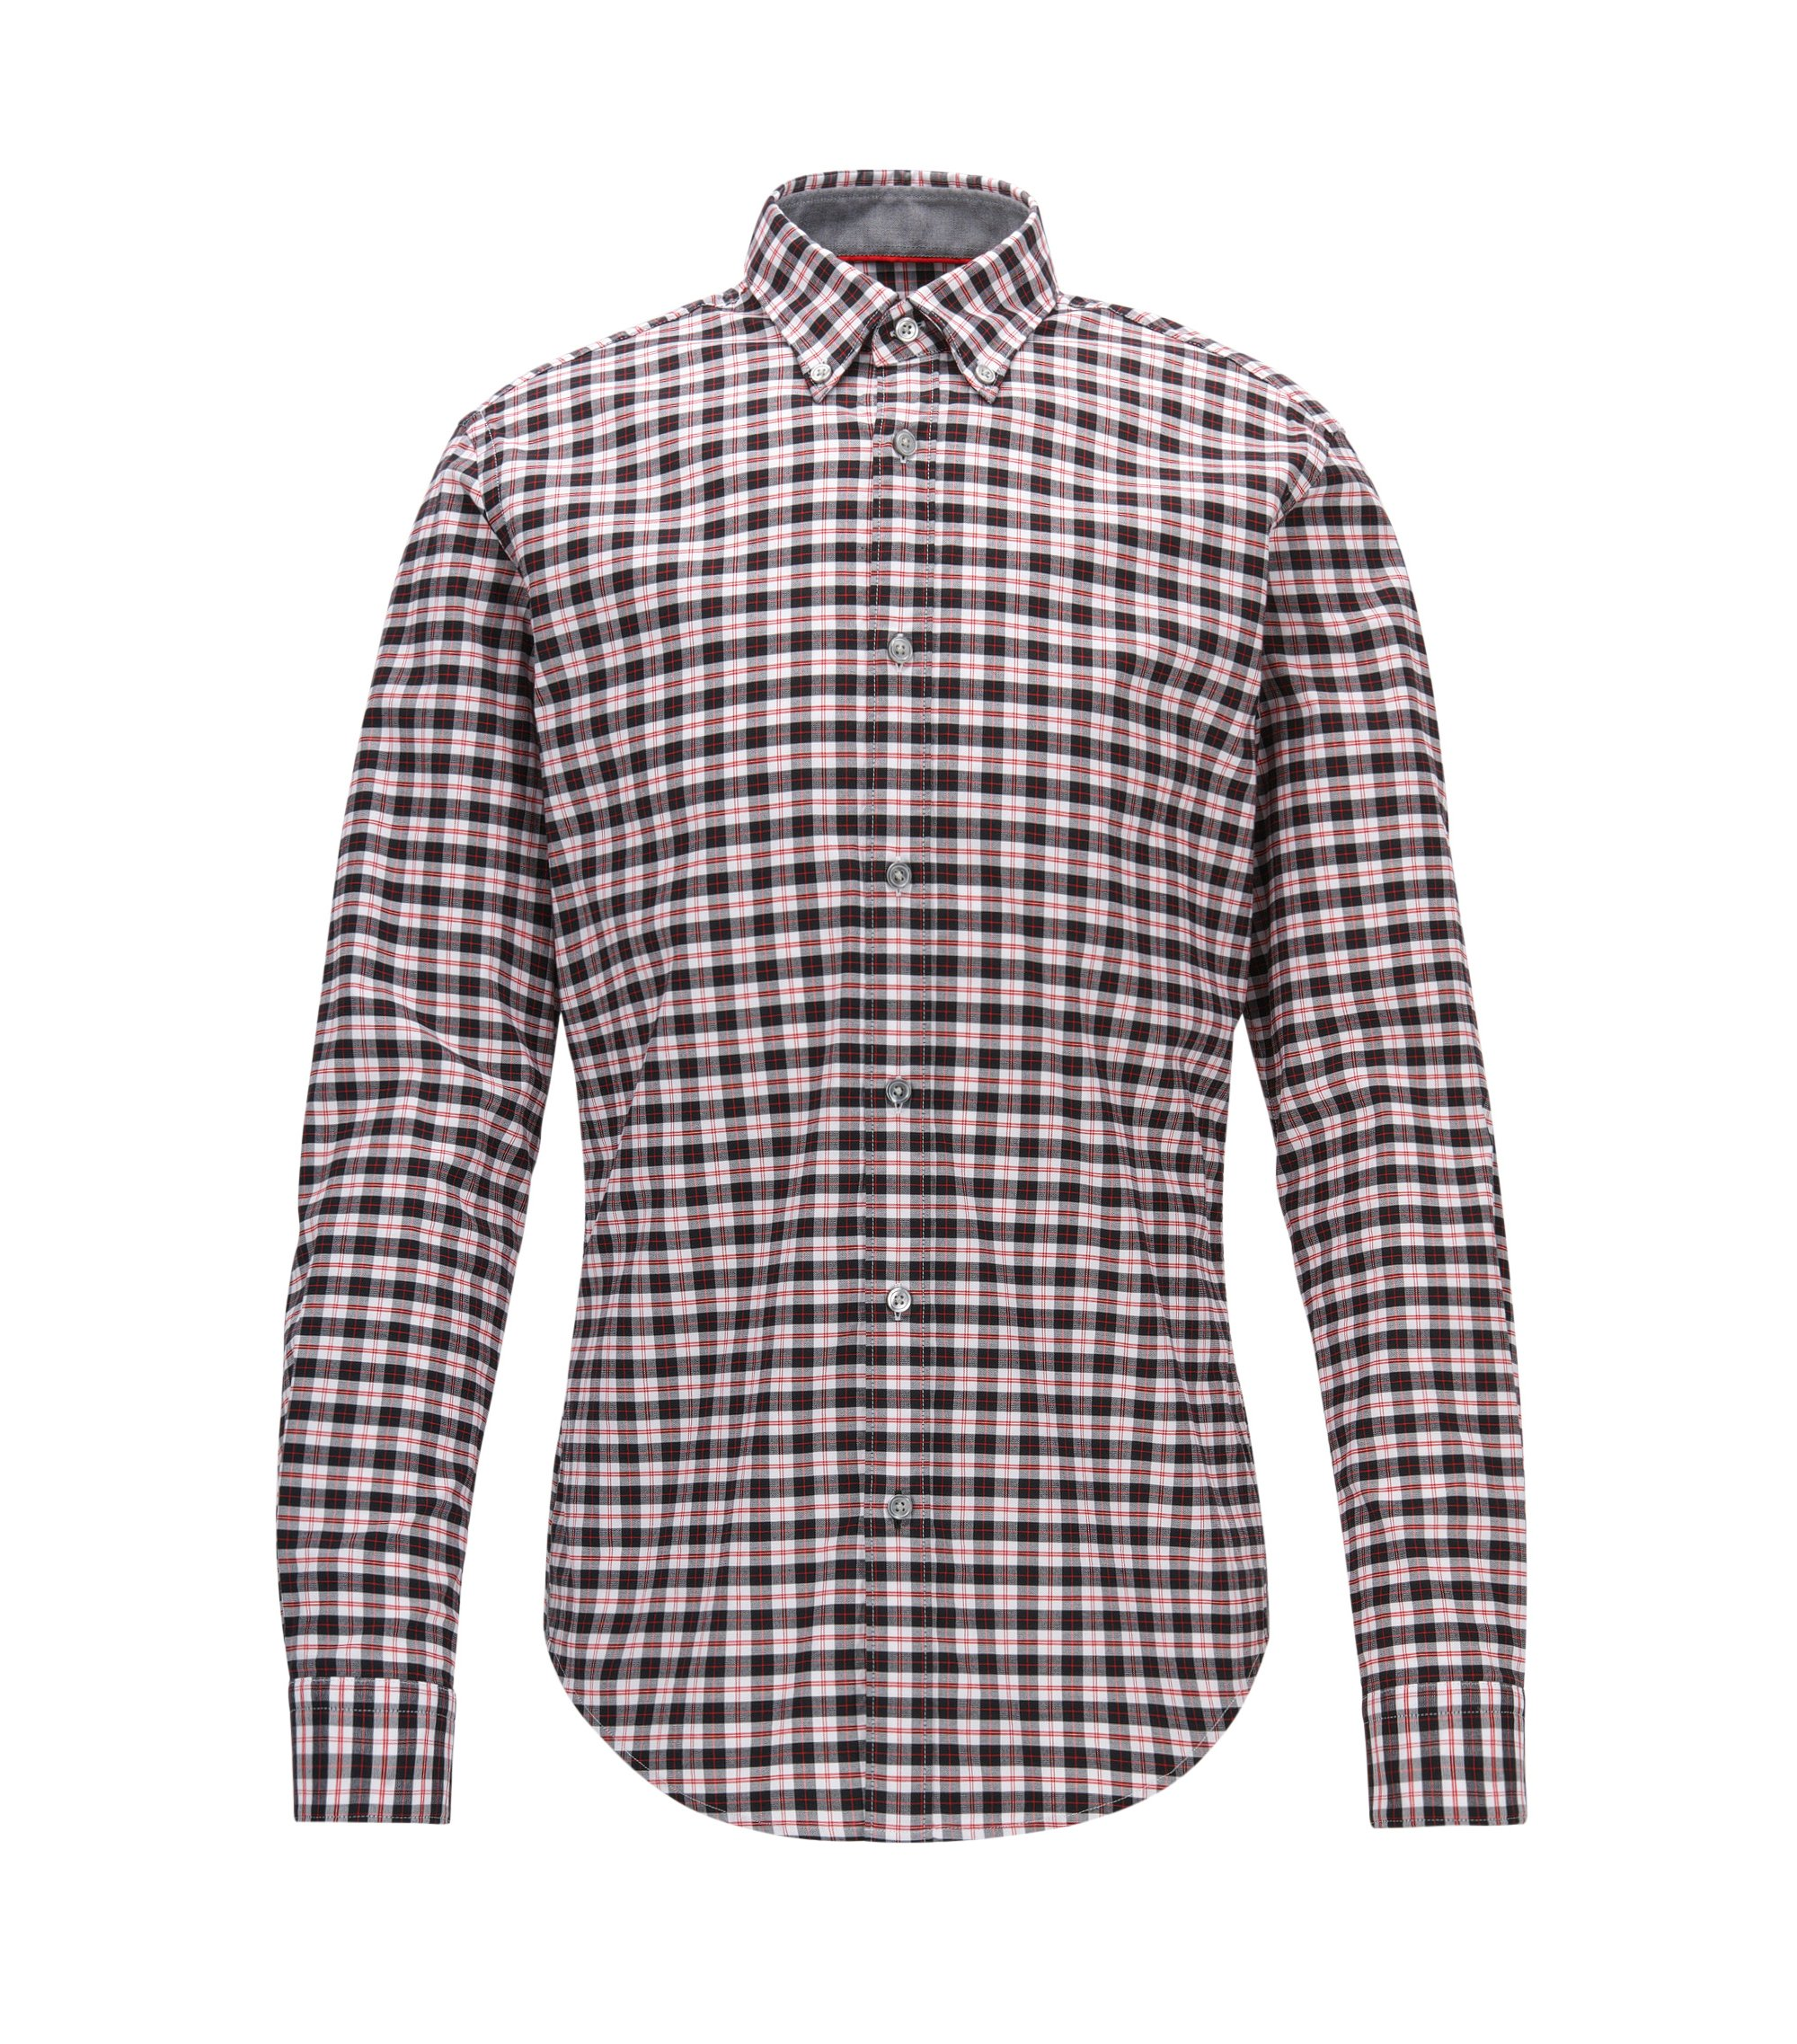 Chemise à carreaux Slim Fit en coton Oxford stretch, Fantaisie